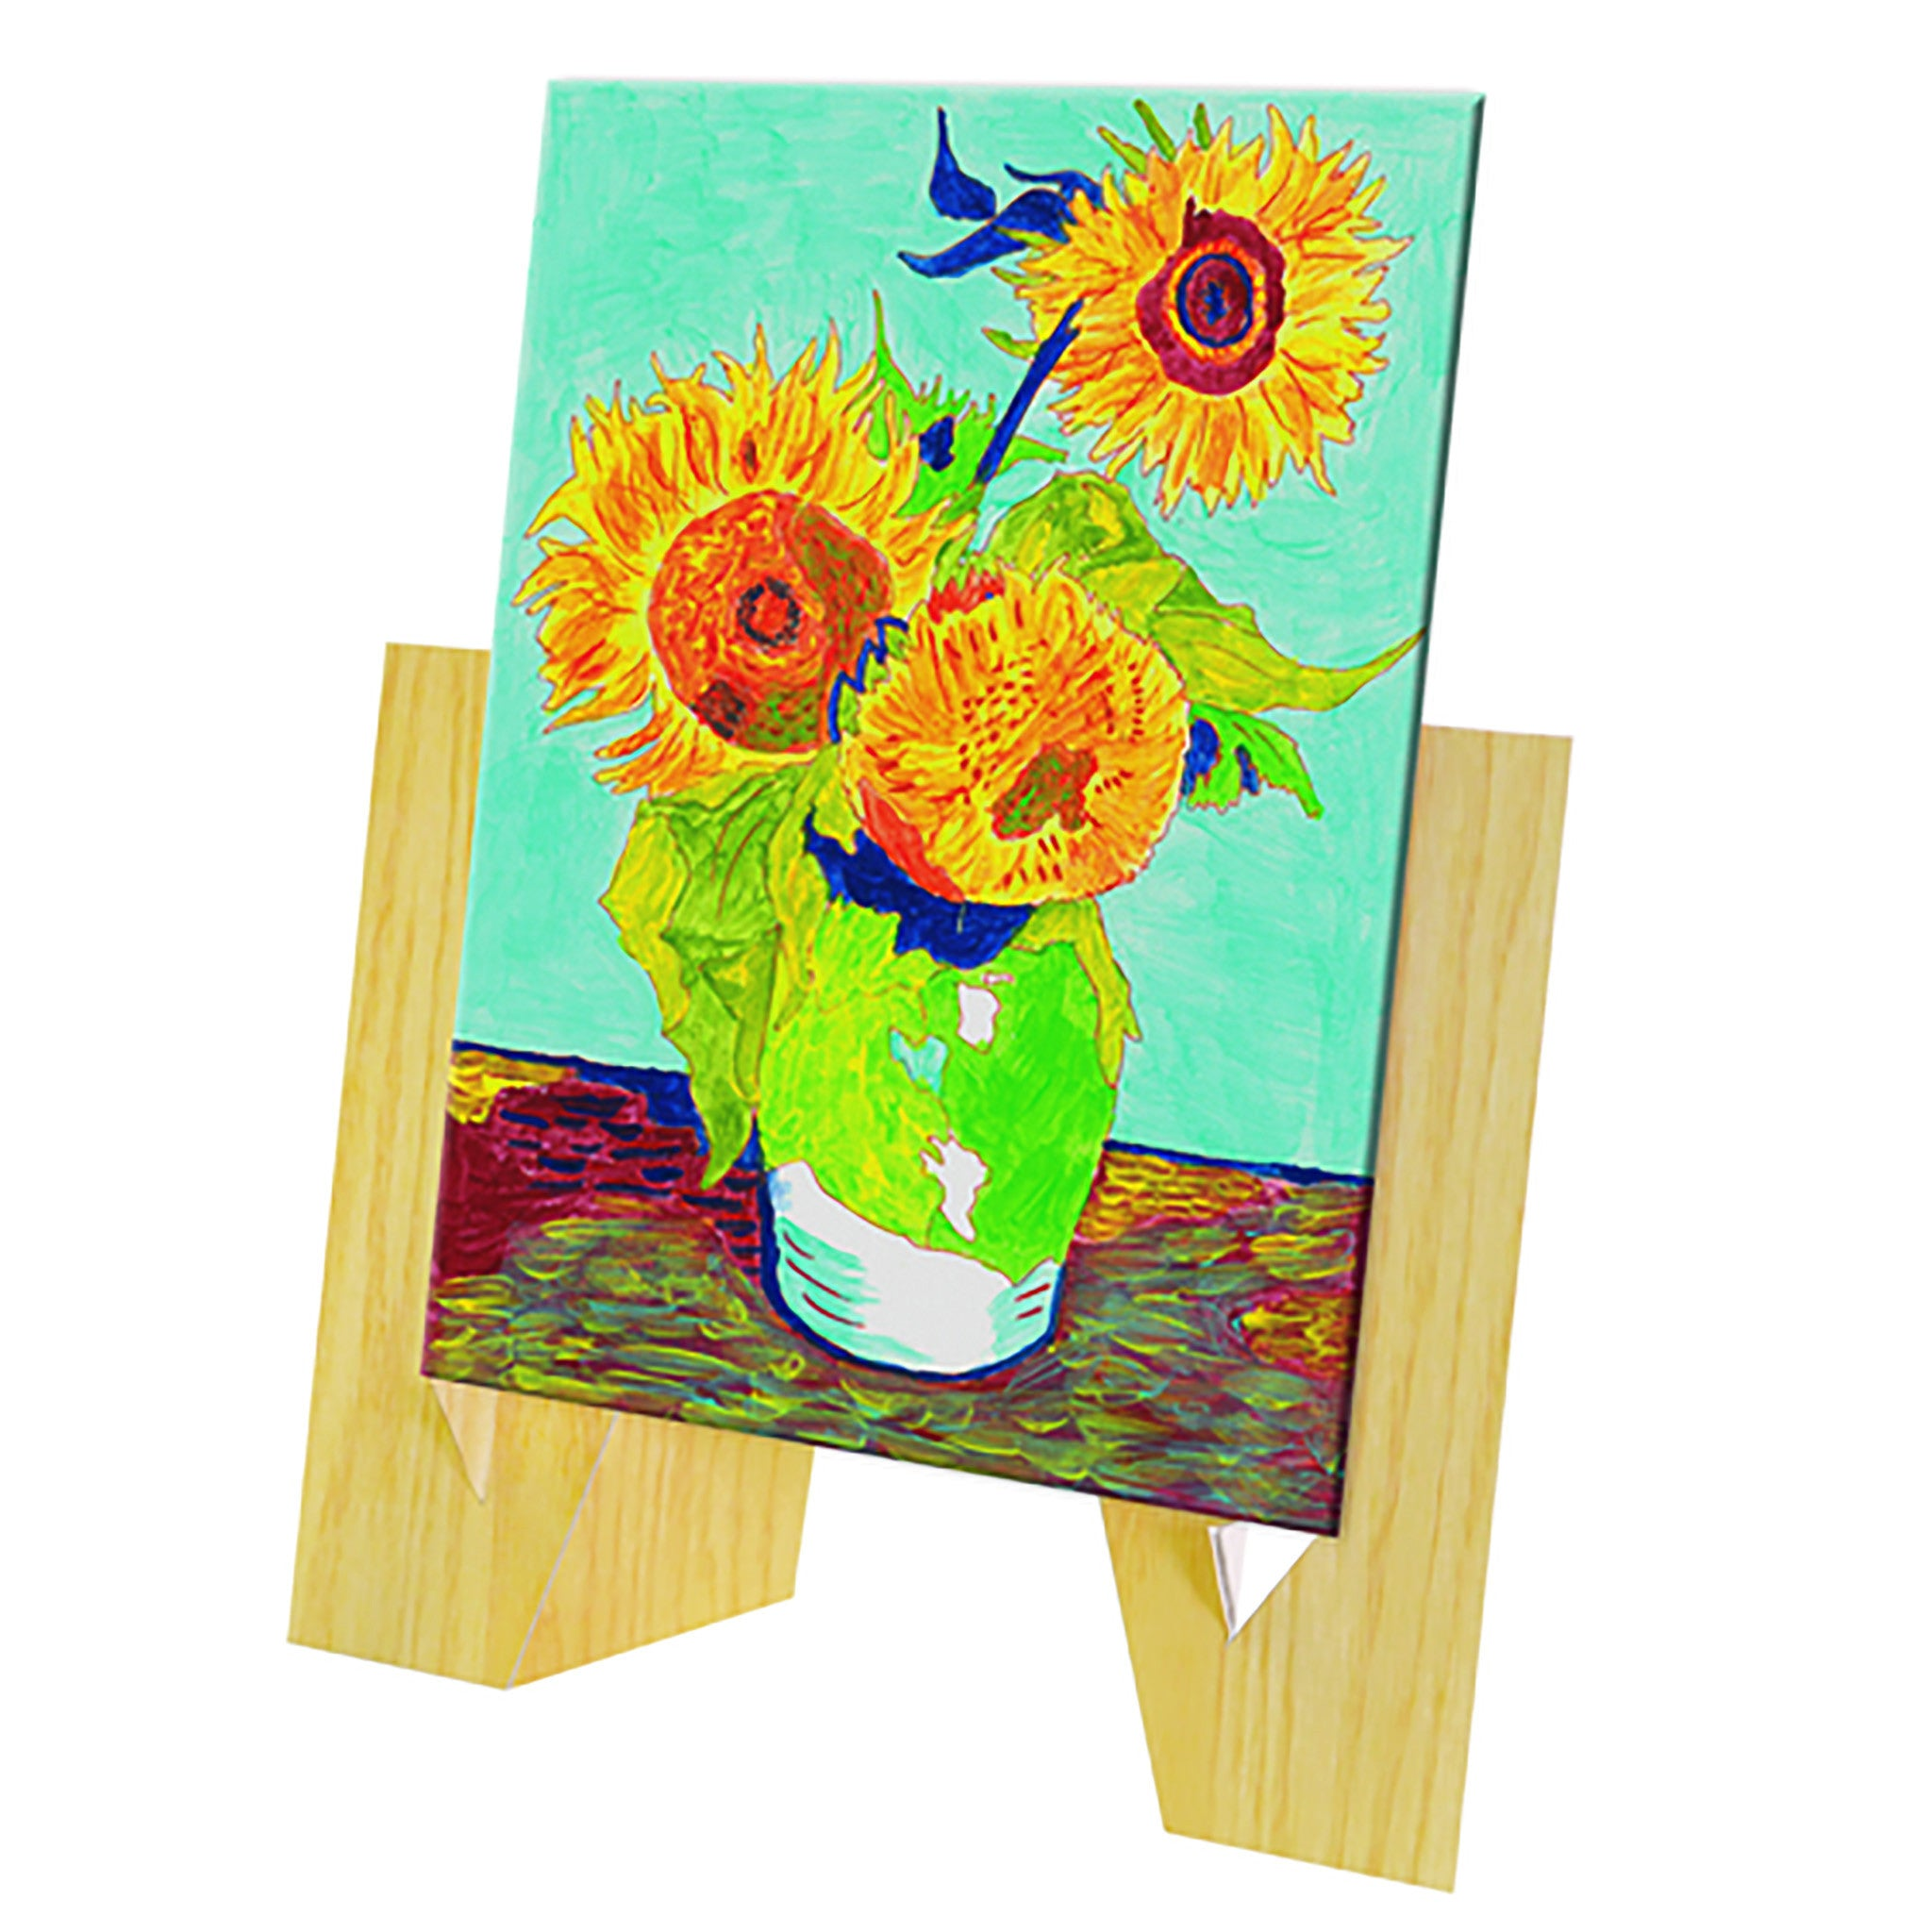 Paint-by-Number Guided Art Set - Van Gogh\'s Sunflowers – The Getty Store